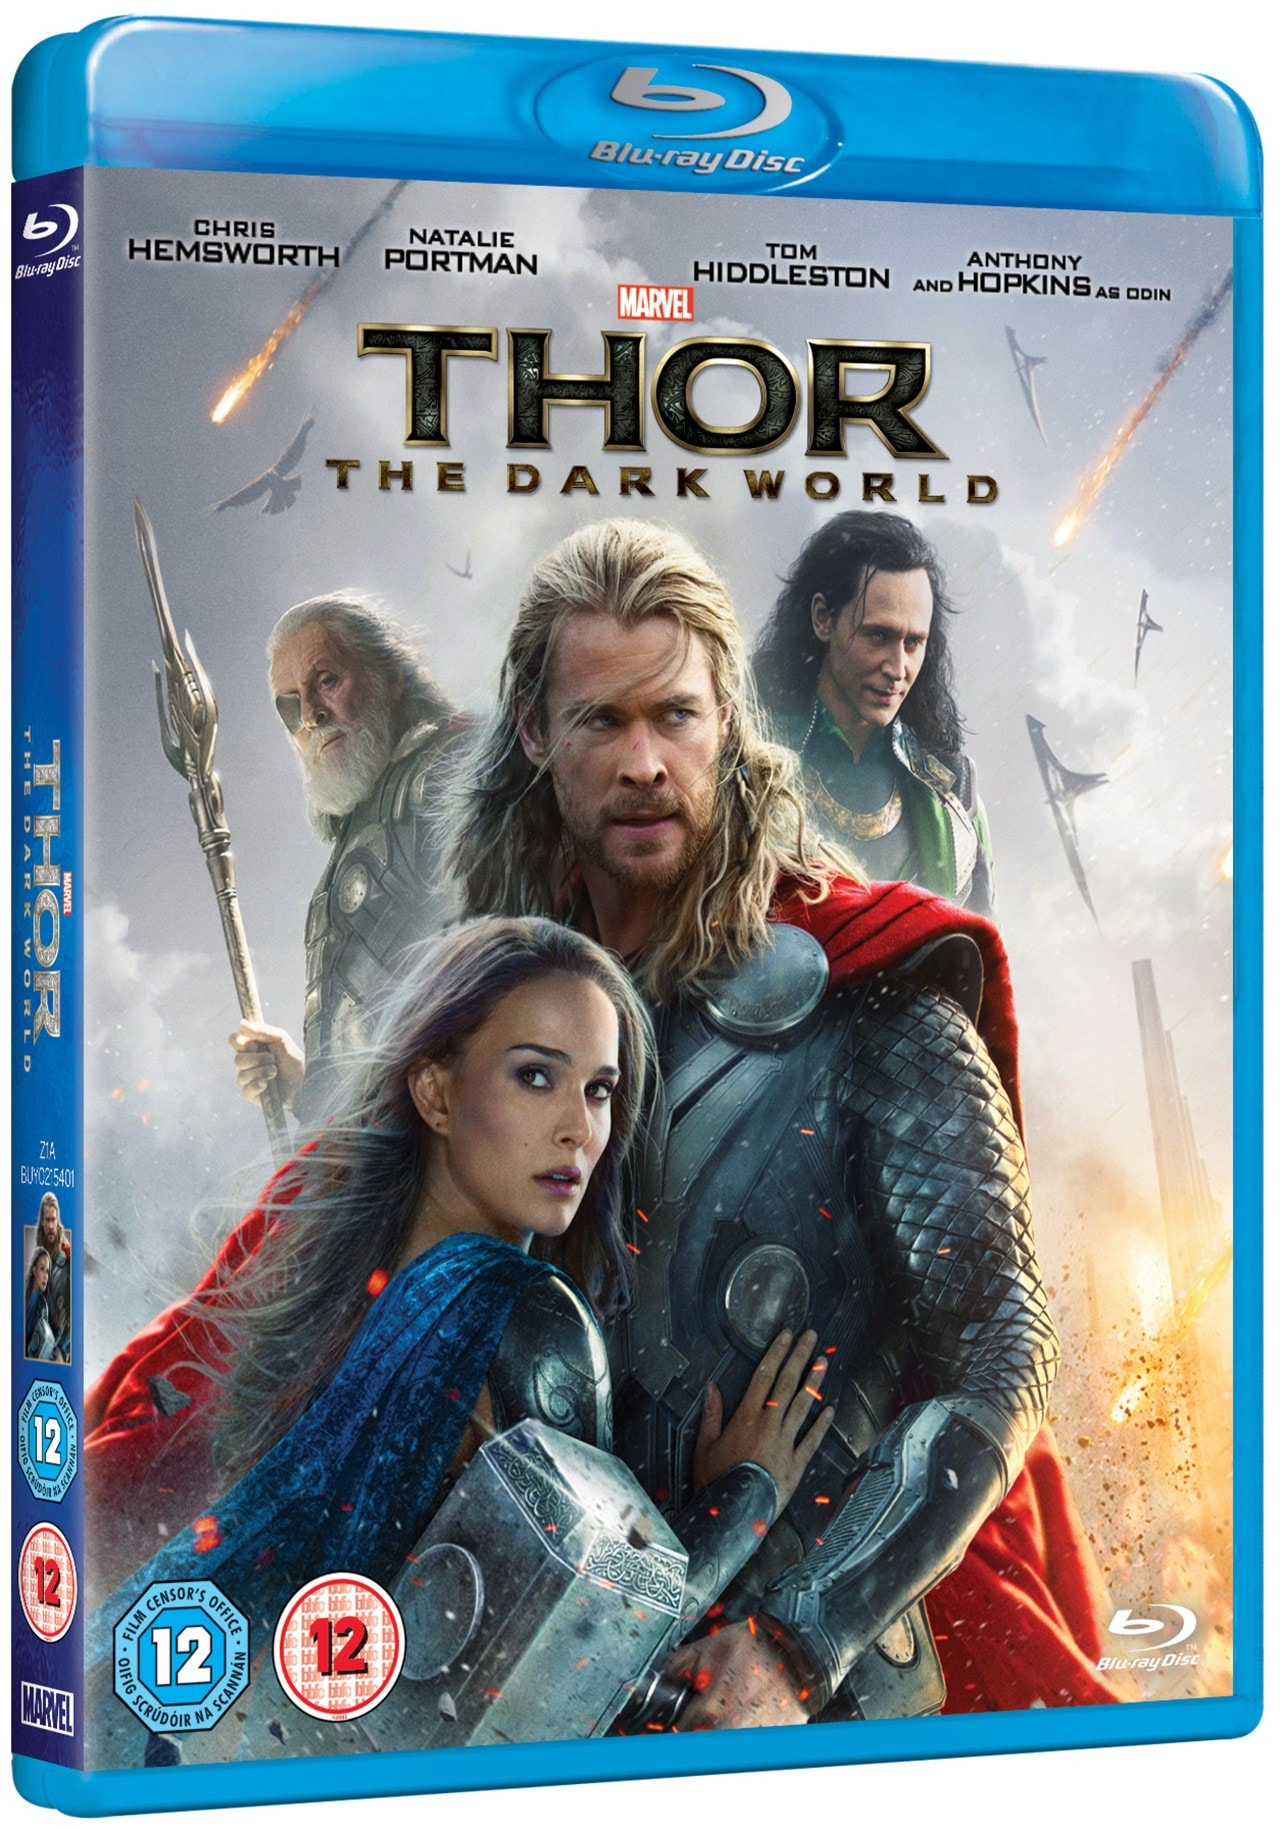 Thor: The Dark World - 4